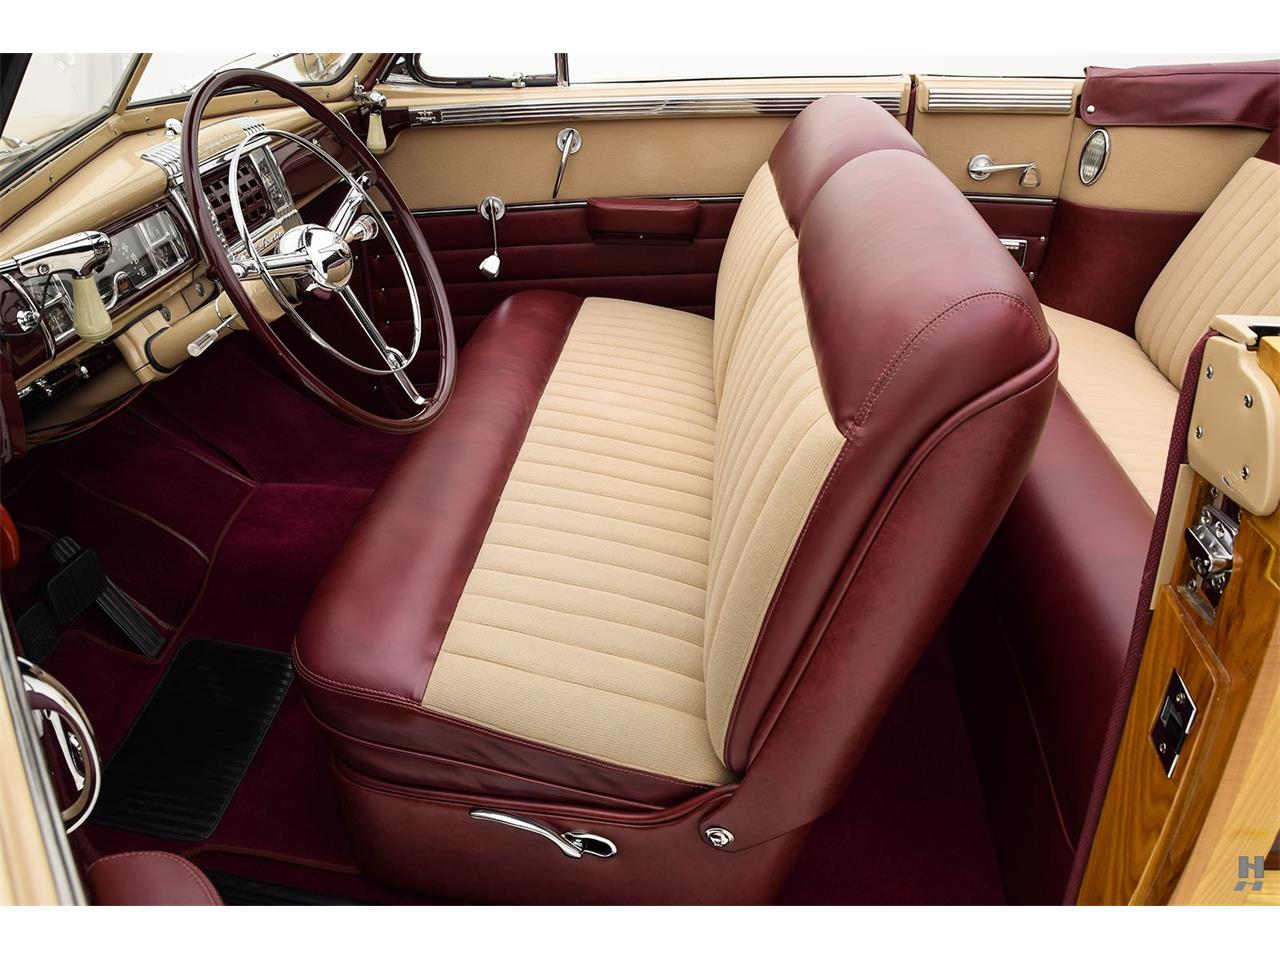 Large Picture of '47 Chrysler Town & Country located in Missouri - $198,500.00 - L804